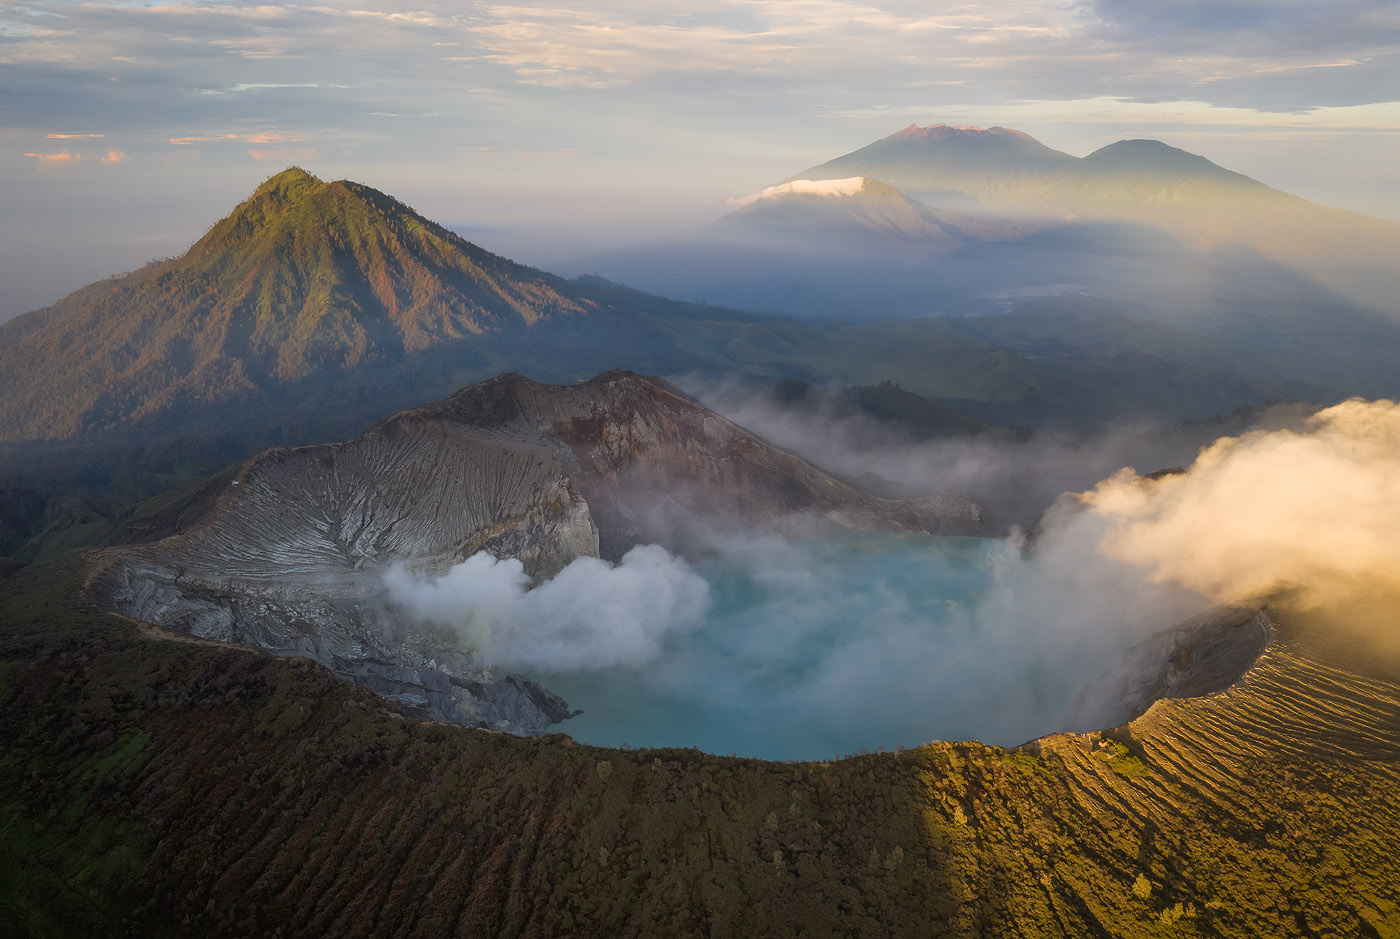 Astounding sunrise light shines upon five East Javanese volcanoes. In the bottom of the frame is Ijen crater. To its left, the lush, green Gurung Ranti. Then farther away, from left to right: Pendil, Raung and Suket. The shadow from the bottom-left to the mid-right is cast by Gurung Merapi, just behind me. This is a classic near-far landscape shot, which demonstrates that the approach to aerial photography is often very similar to that of regular photography from the ground. My foreground/background compositional considerations were identical.